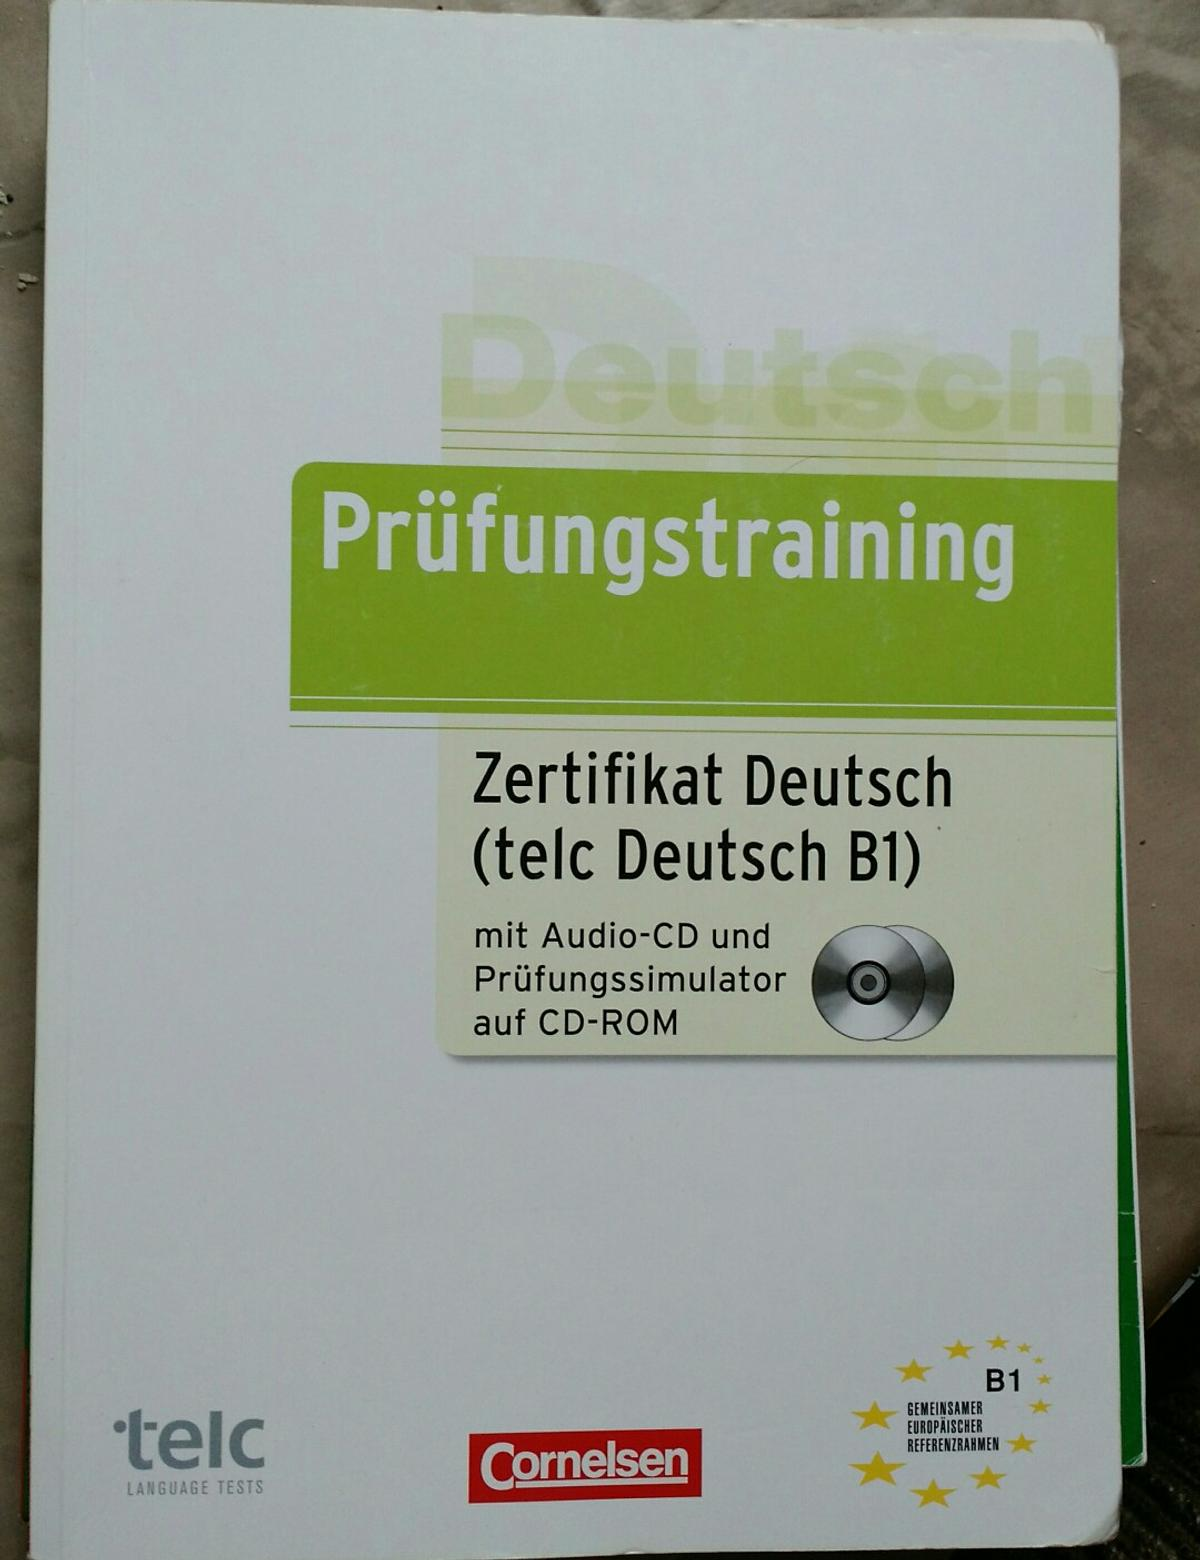 Prüfungstraining Buch Telc B1 In 71106 Magstadt For 1500 For